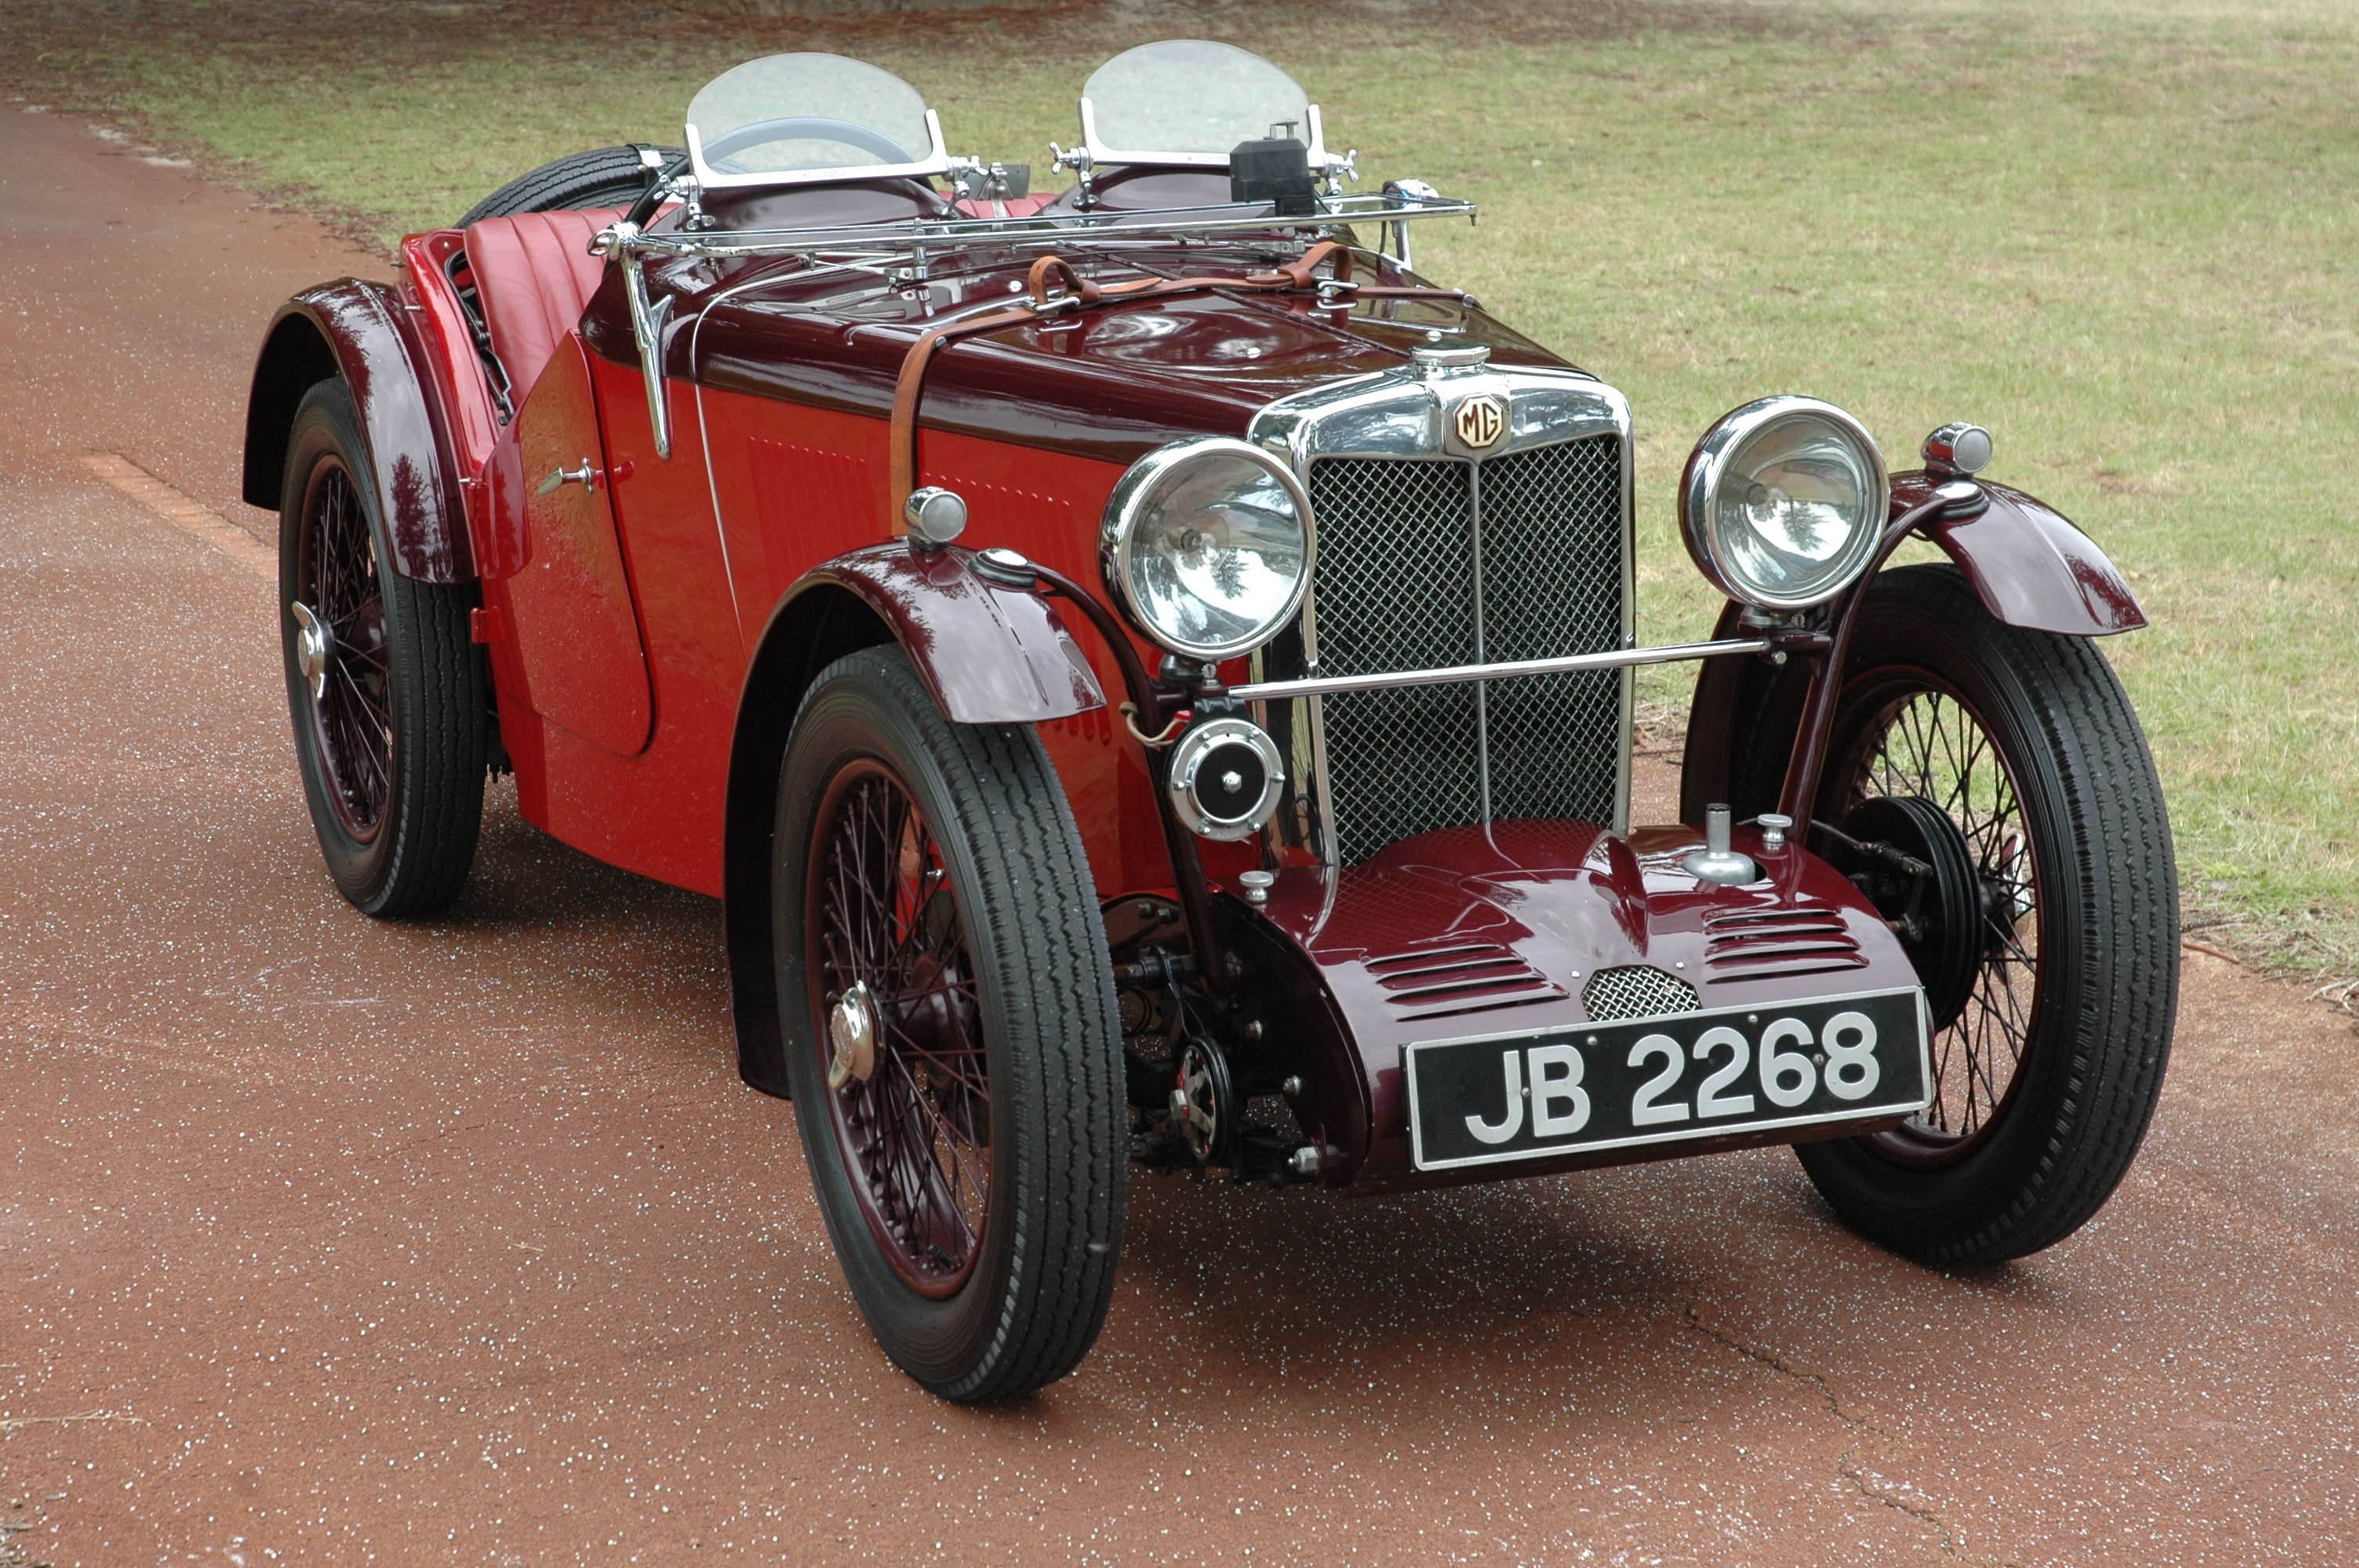 RACV Motorclassica partners with Manheim for the auction of Classic ...